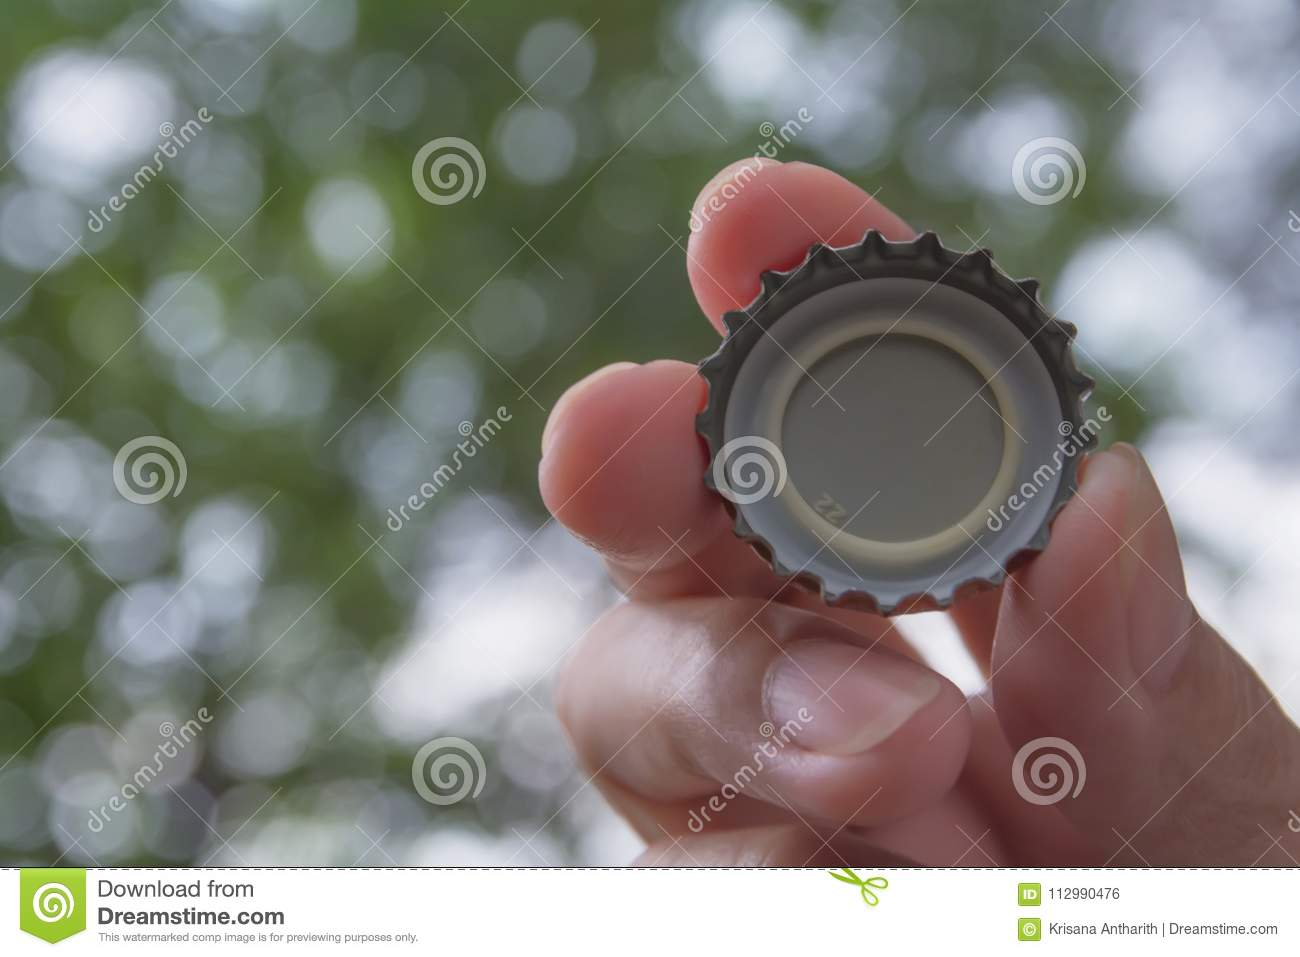 Hand holding a bottle caps on nature background